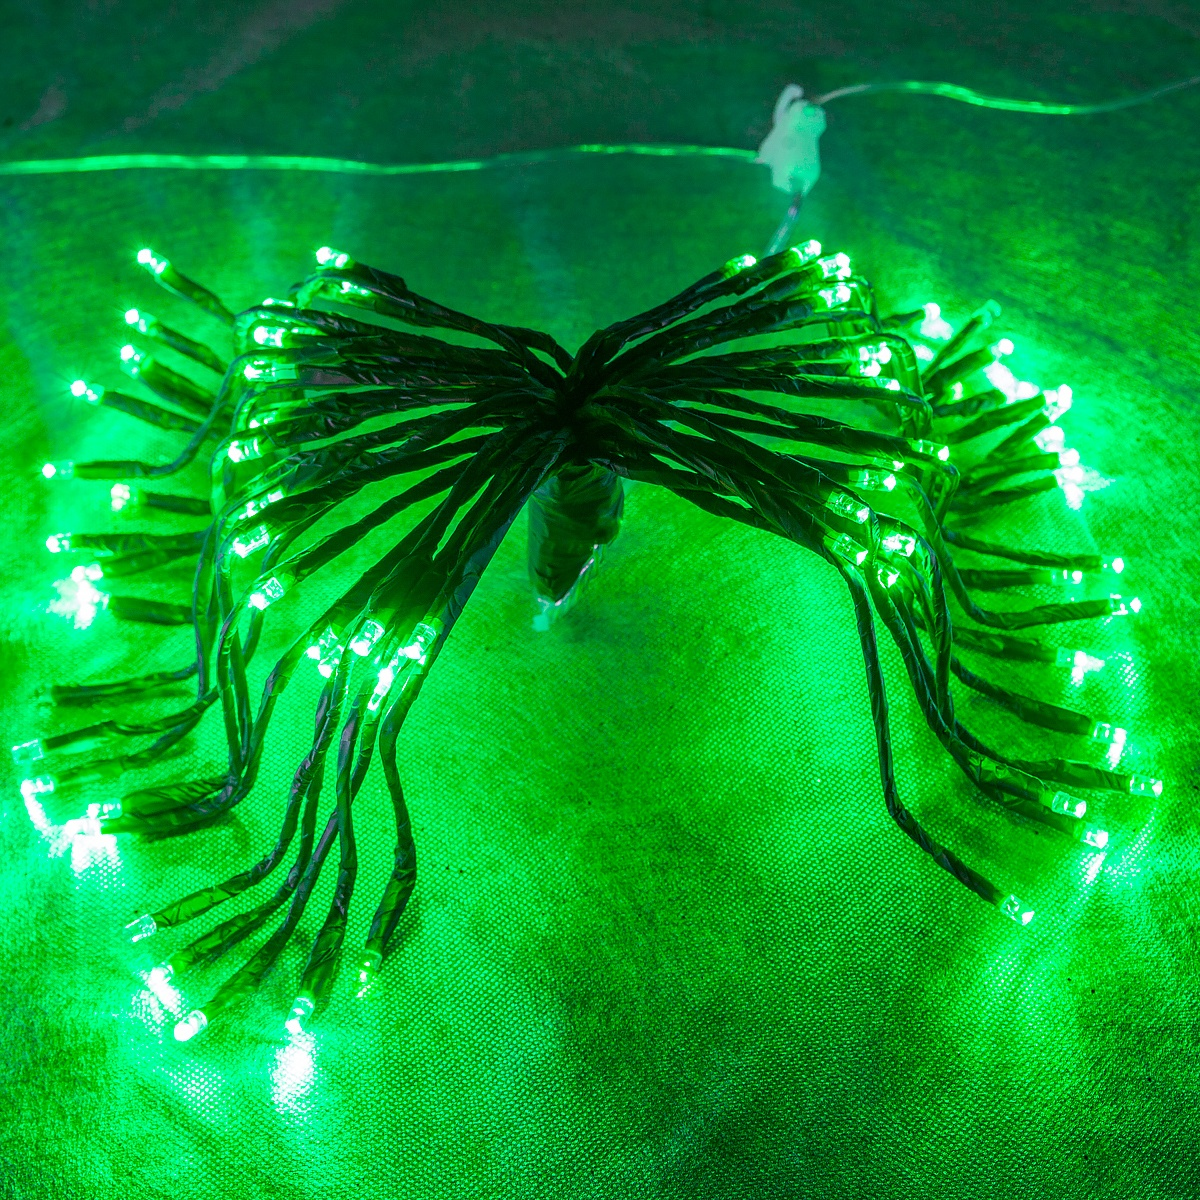 Starburst Lighted Branches with Green LED Twinkle Lights, 3 pc